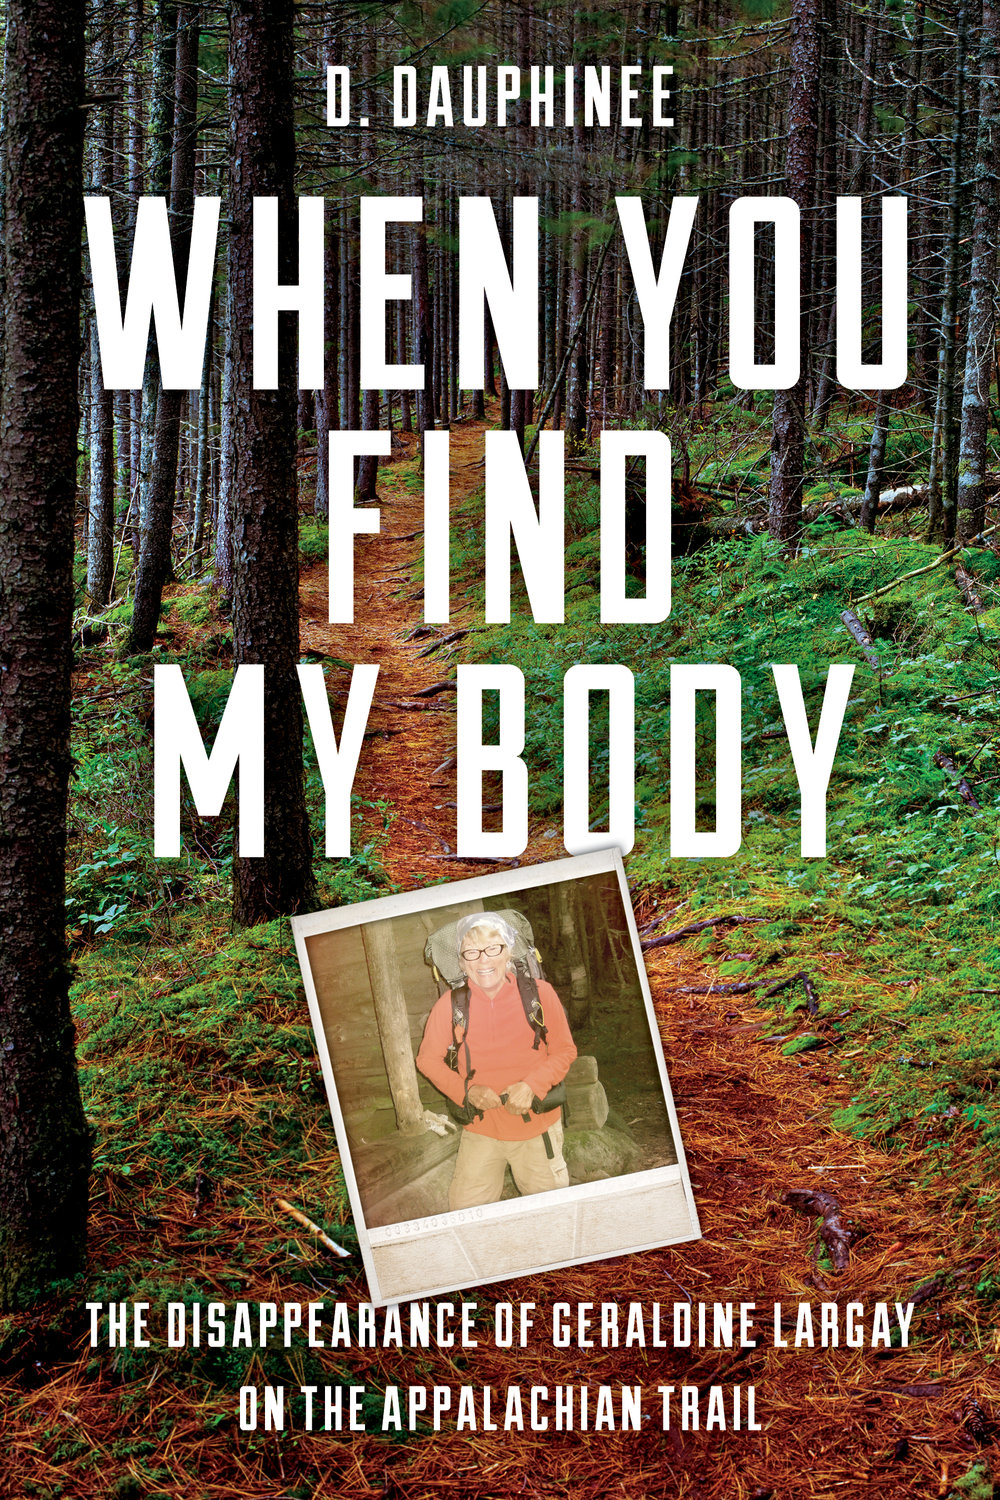 When You Find My Body - This book tells the story of events preceding Geraldine Largay's vanishing in July 2013, while hiking the Appalachian Trail in Maine, what caused her to go astray, and the massive search and rescue operation that followed. Her disappearance sparked the largest lost-person search in Maine history, which culminated in her being presumed dead. She was never again seen alive.Marrying the joys and hardship of life in the outdoors, as well as exploring the search & rescue community, When You Find My Body examines dying with grace and dignity. There are lessons in the story, both large and small. Lessons that may well save lives in the future.